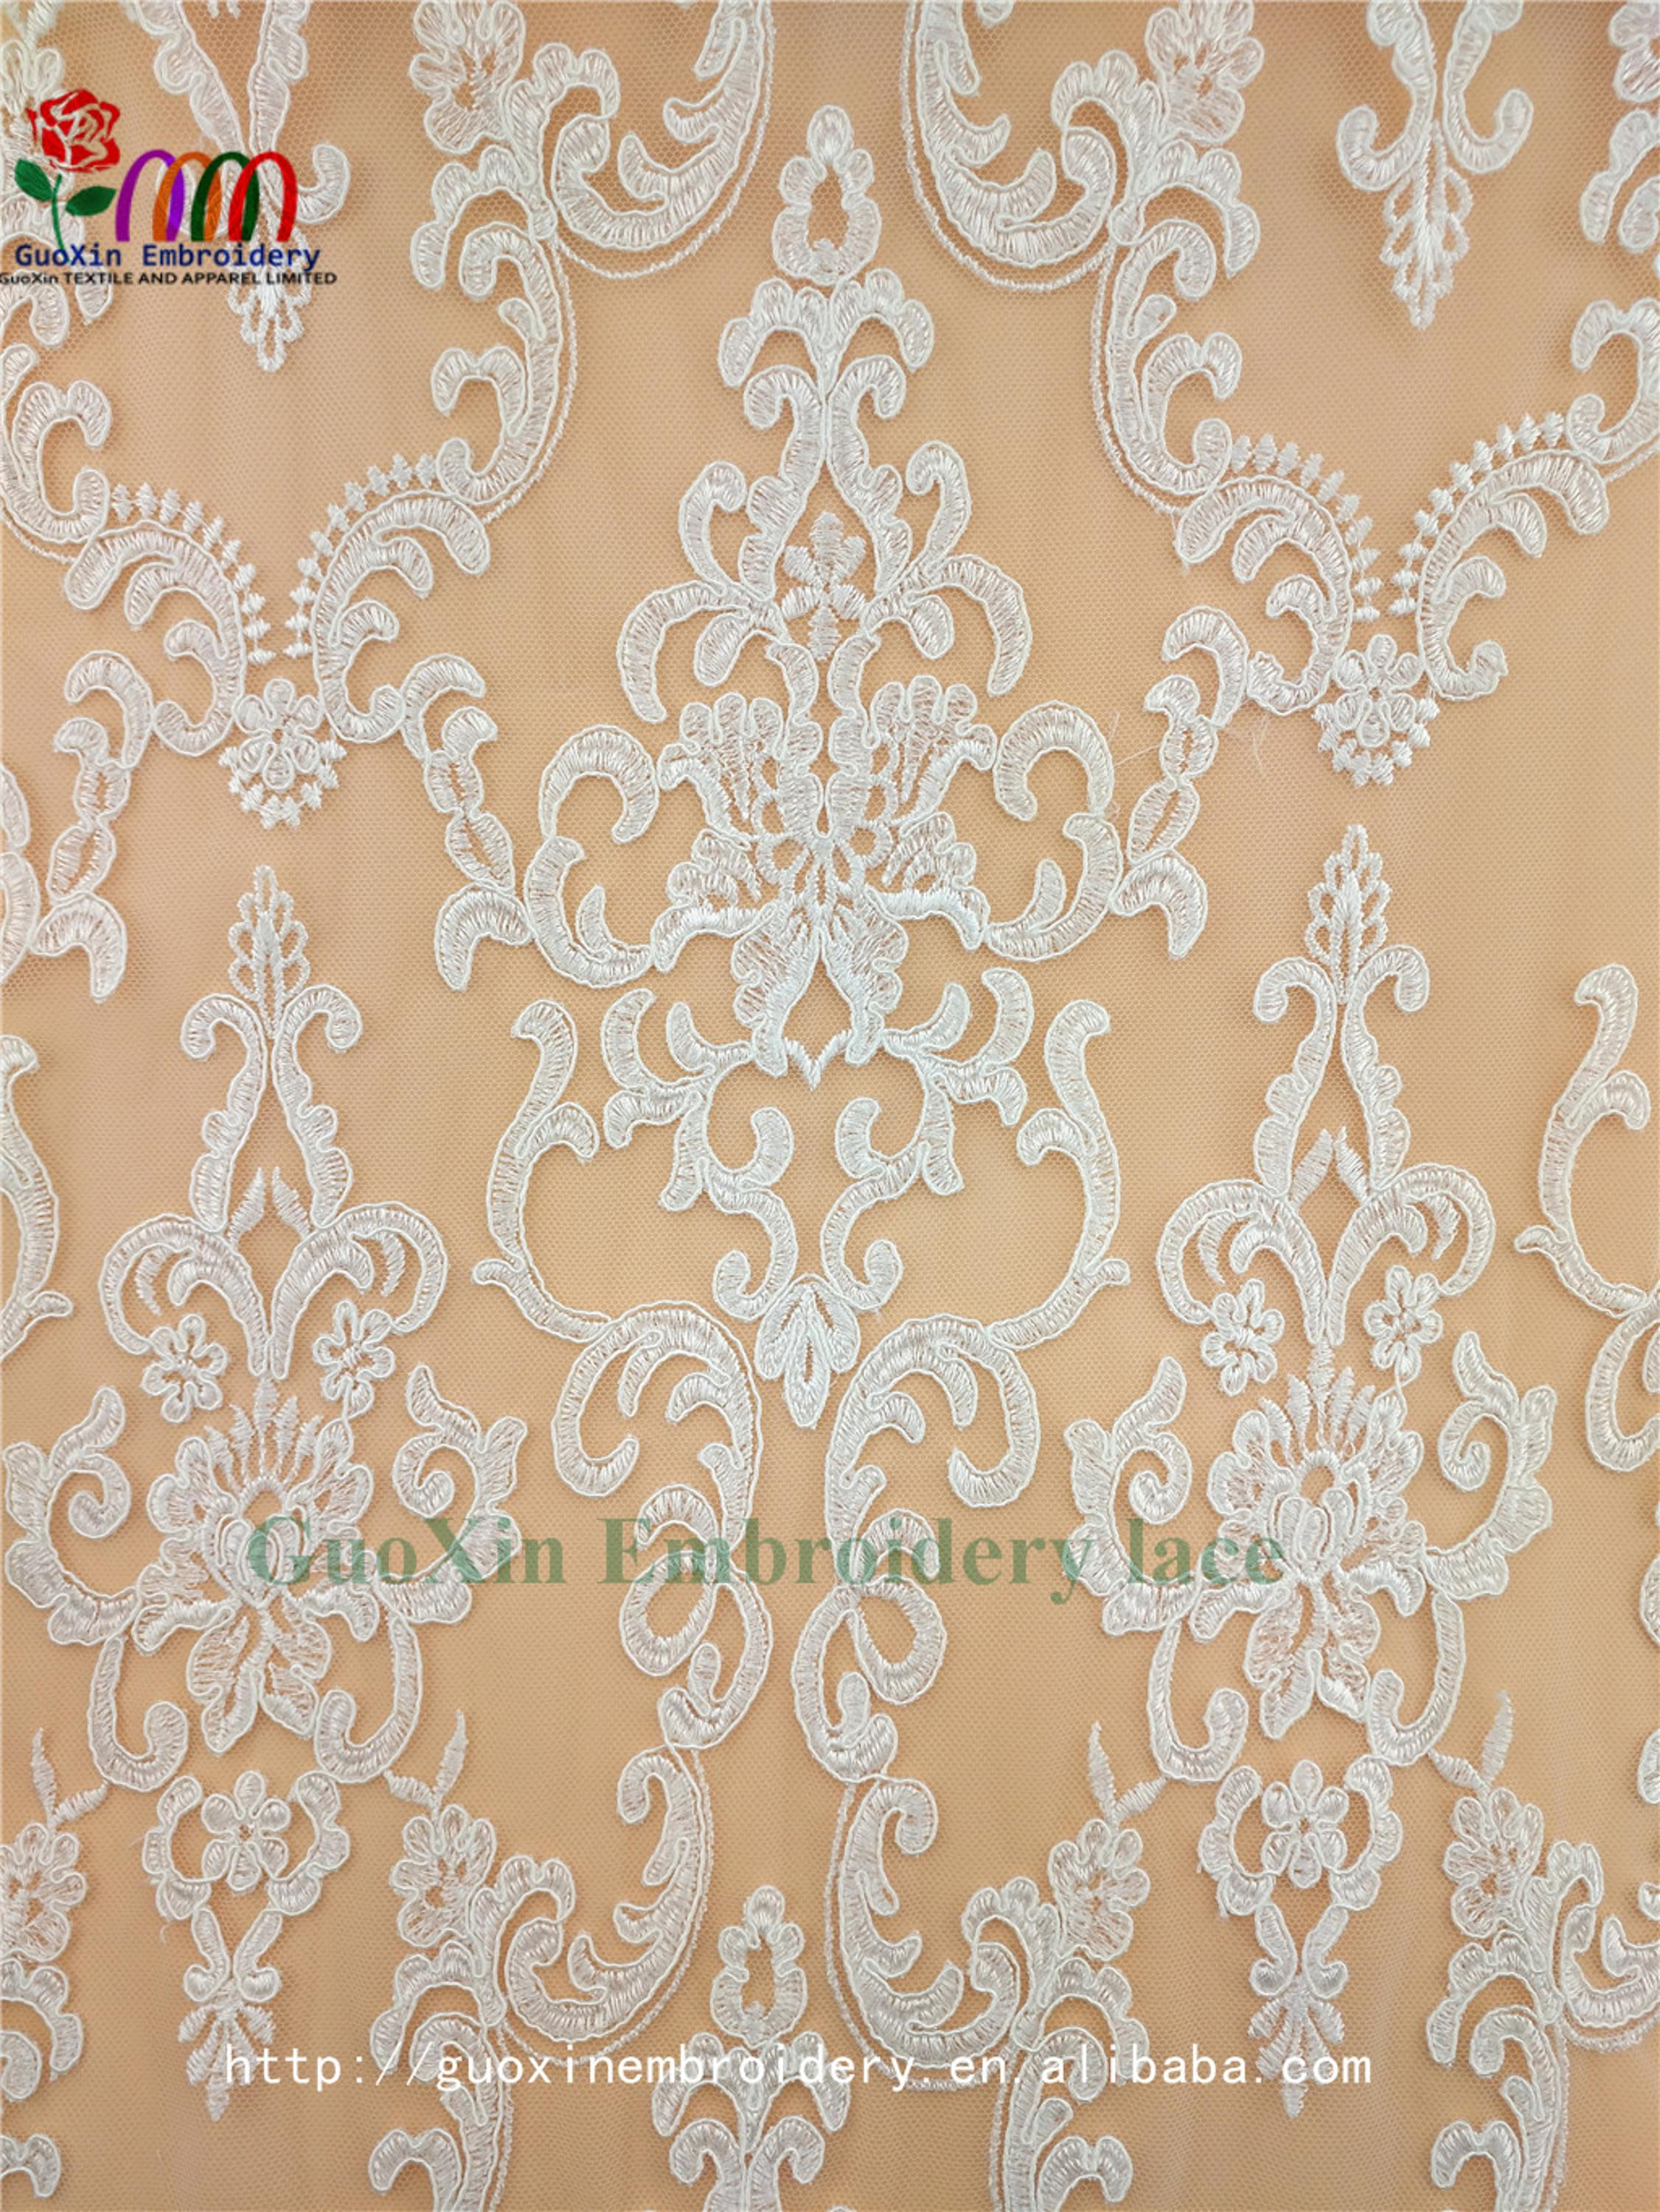 embroidery tulle manufacture wholesale wedding veil ivory lace fabric with cording (1).jpg